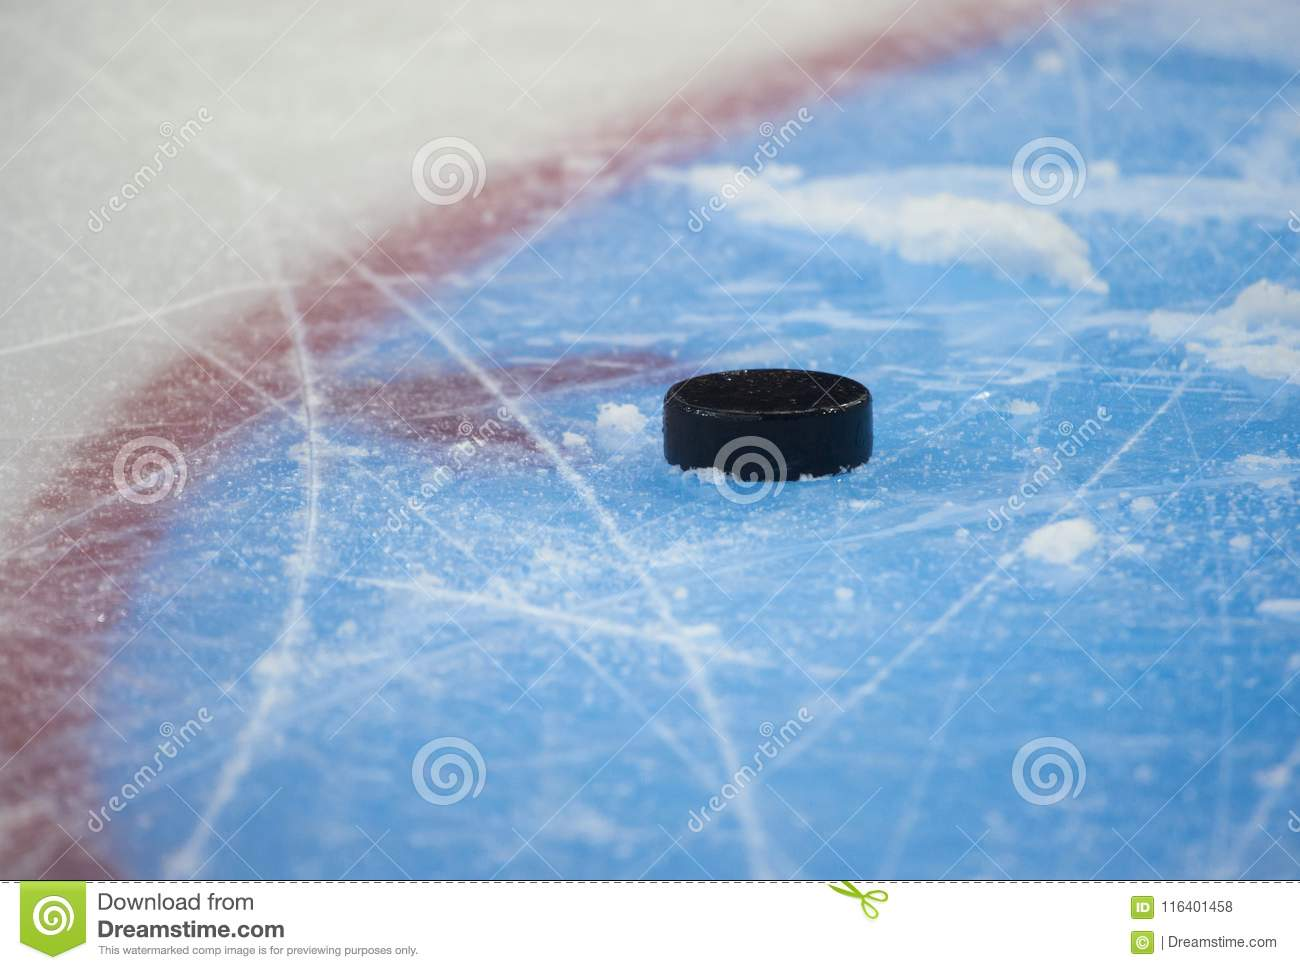 Hockey puck and stick on the ice arena